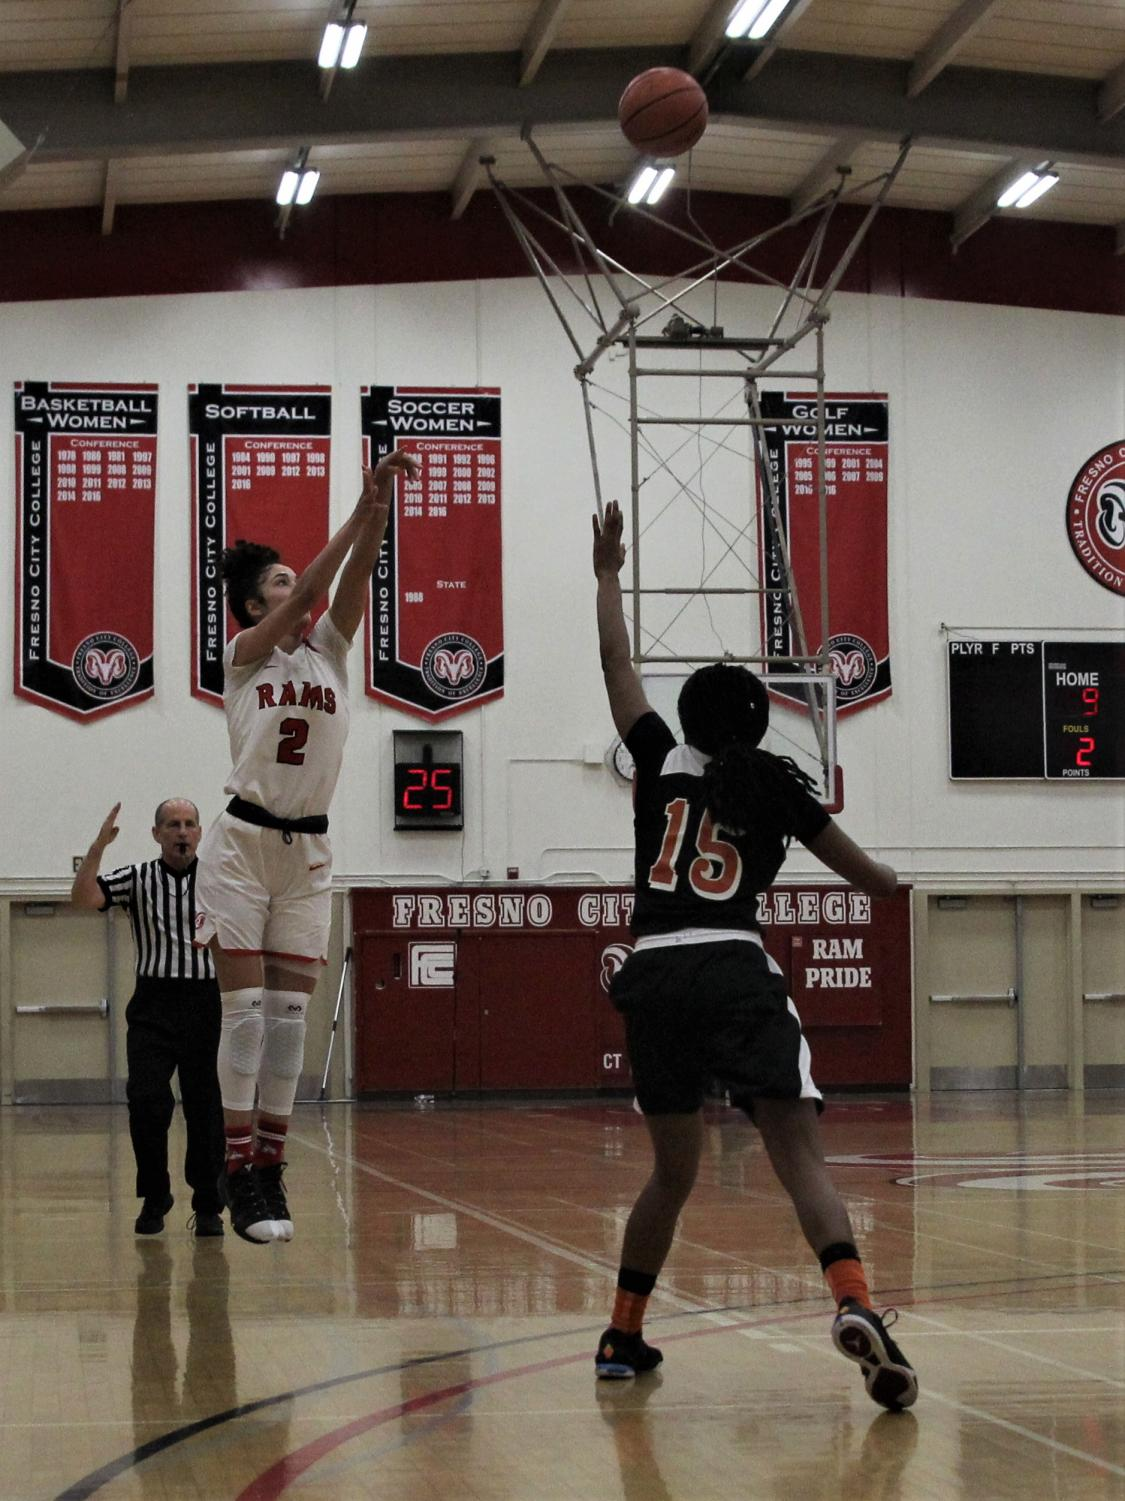 Penelope Kastsaridis puts up a three during the Rams' game against the Reedley Tigers on Feb. 20, 2019.